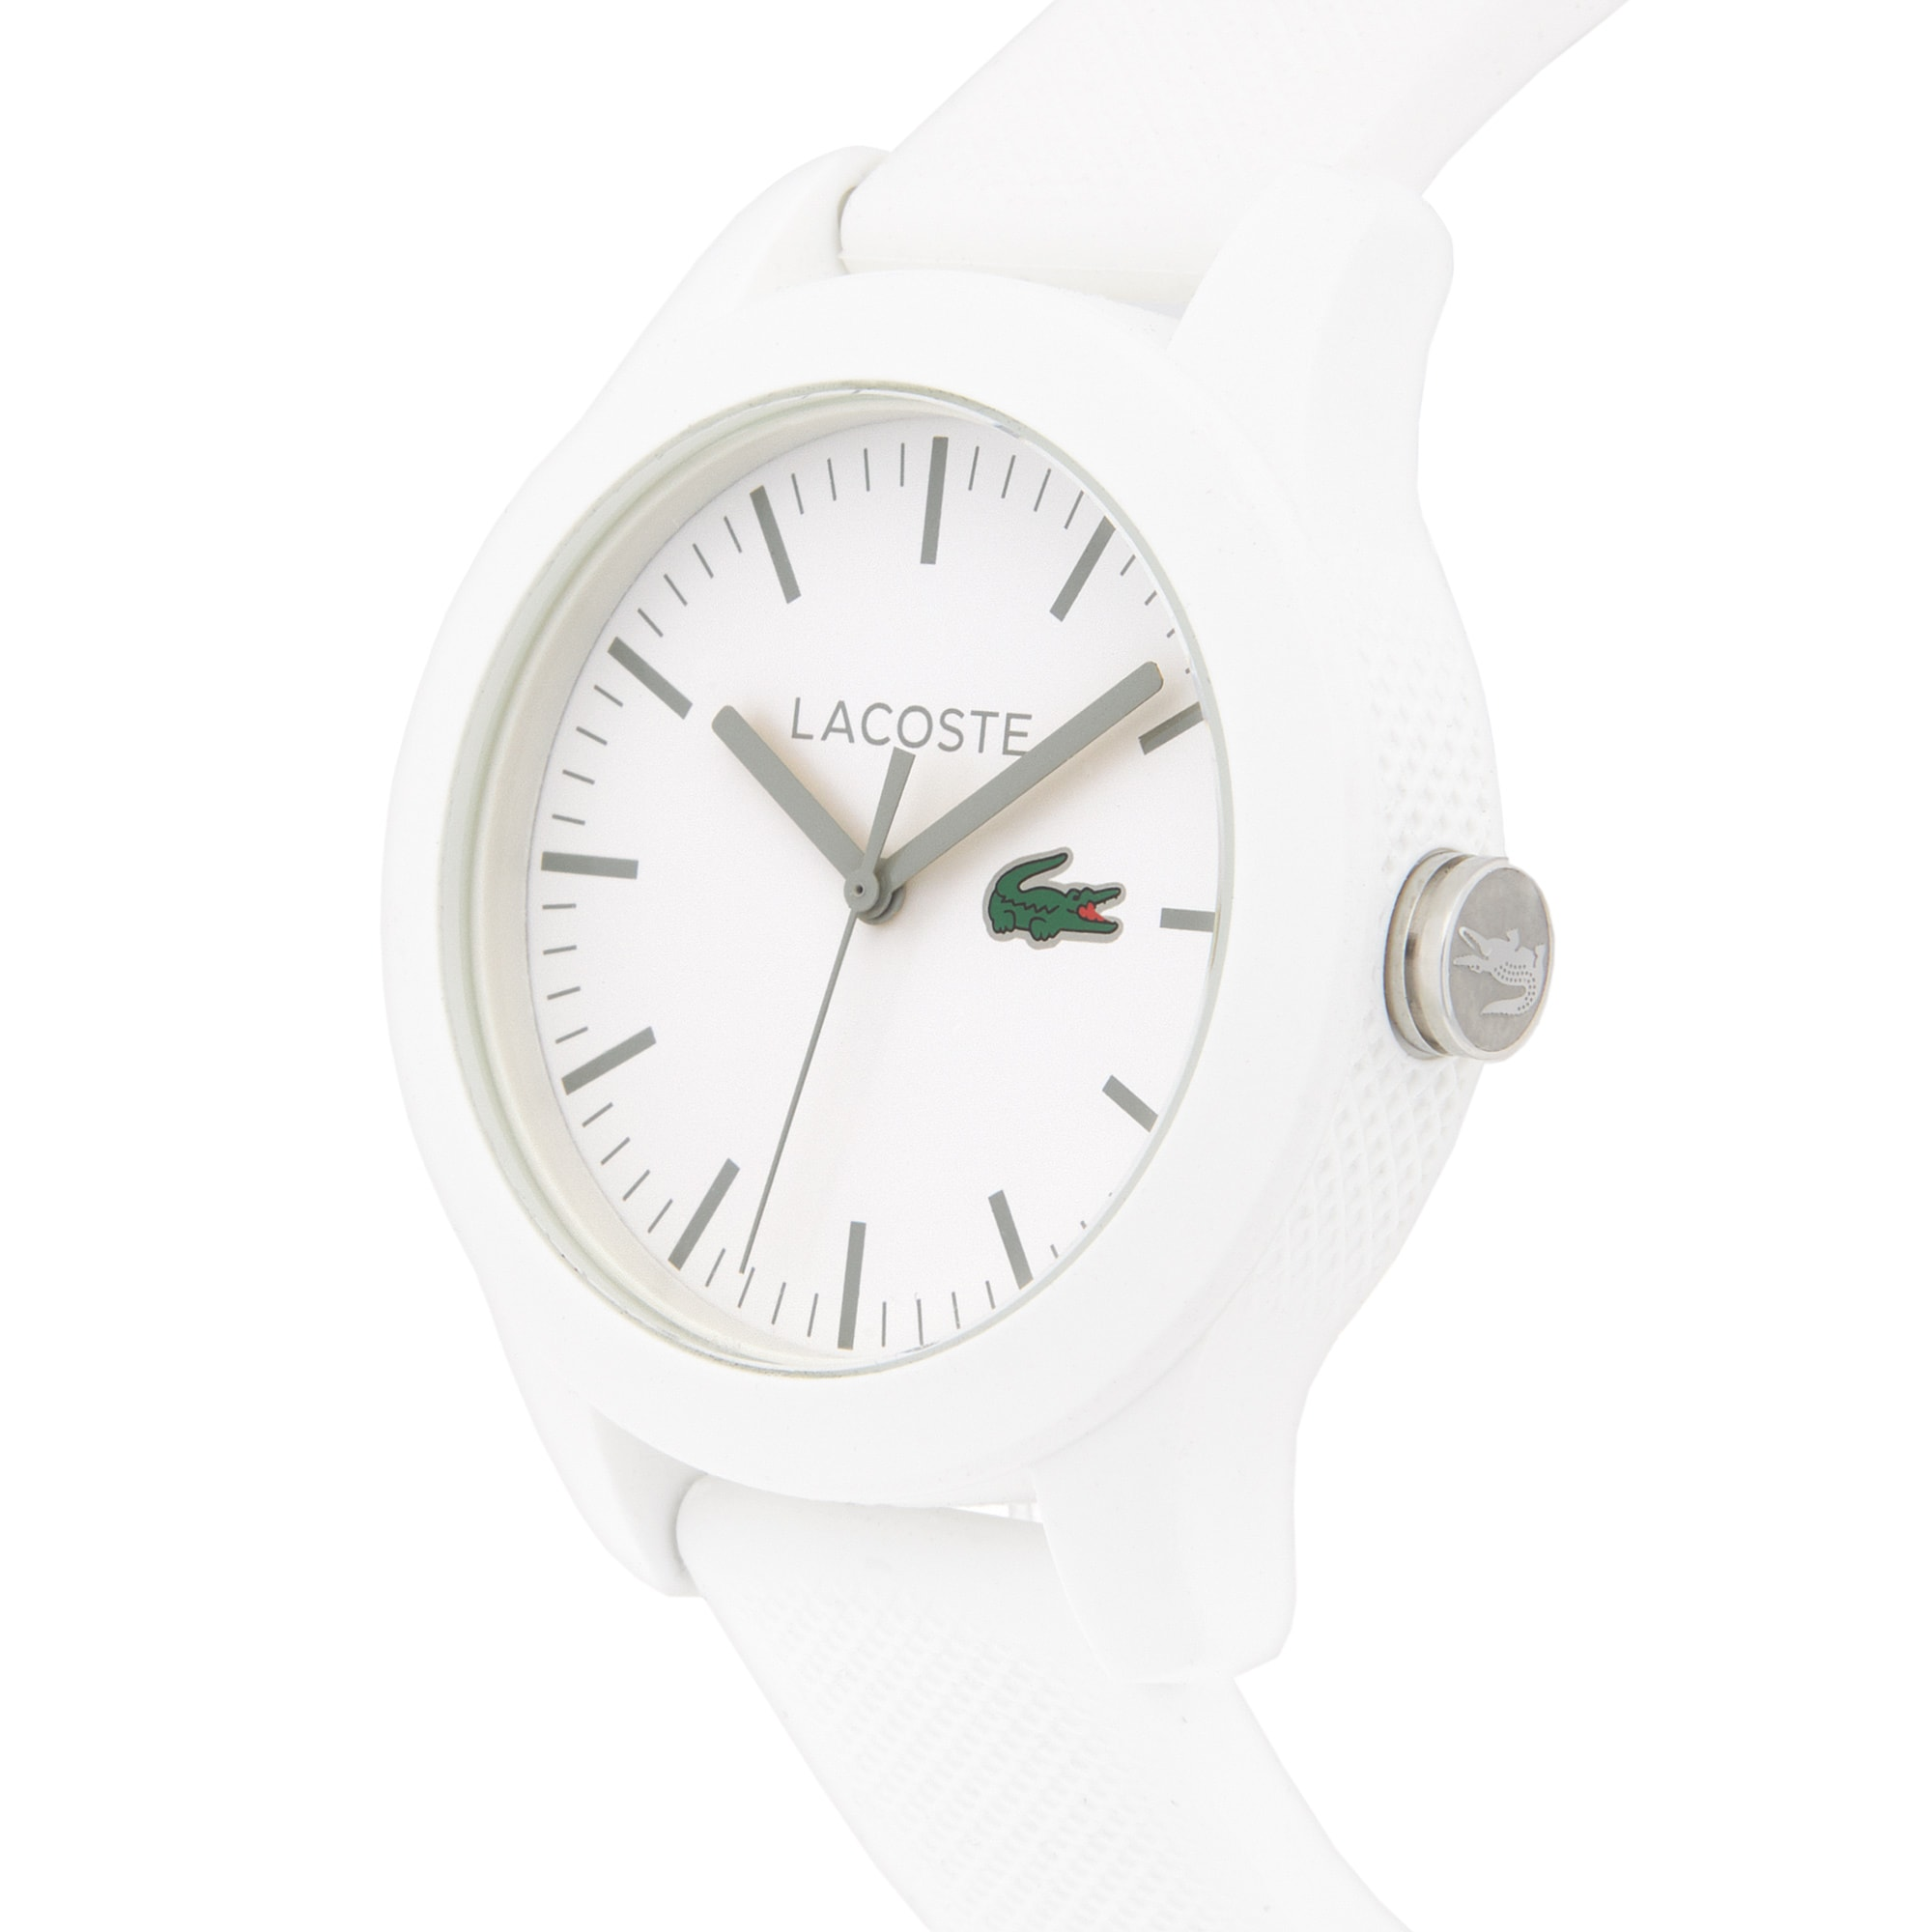 Lacoste.12.12 silicone watch